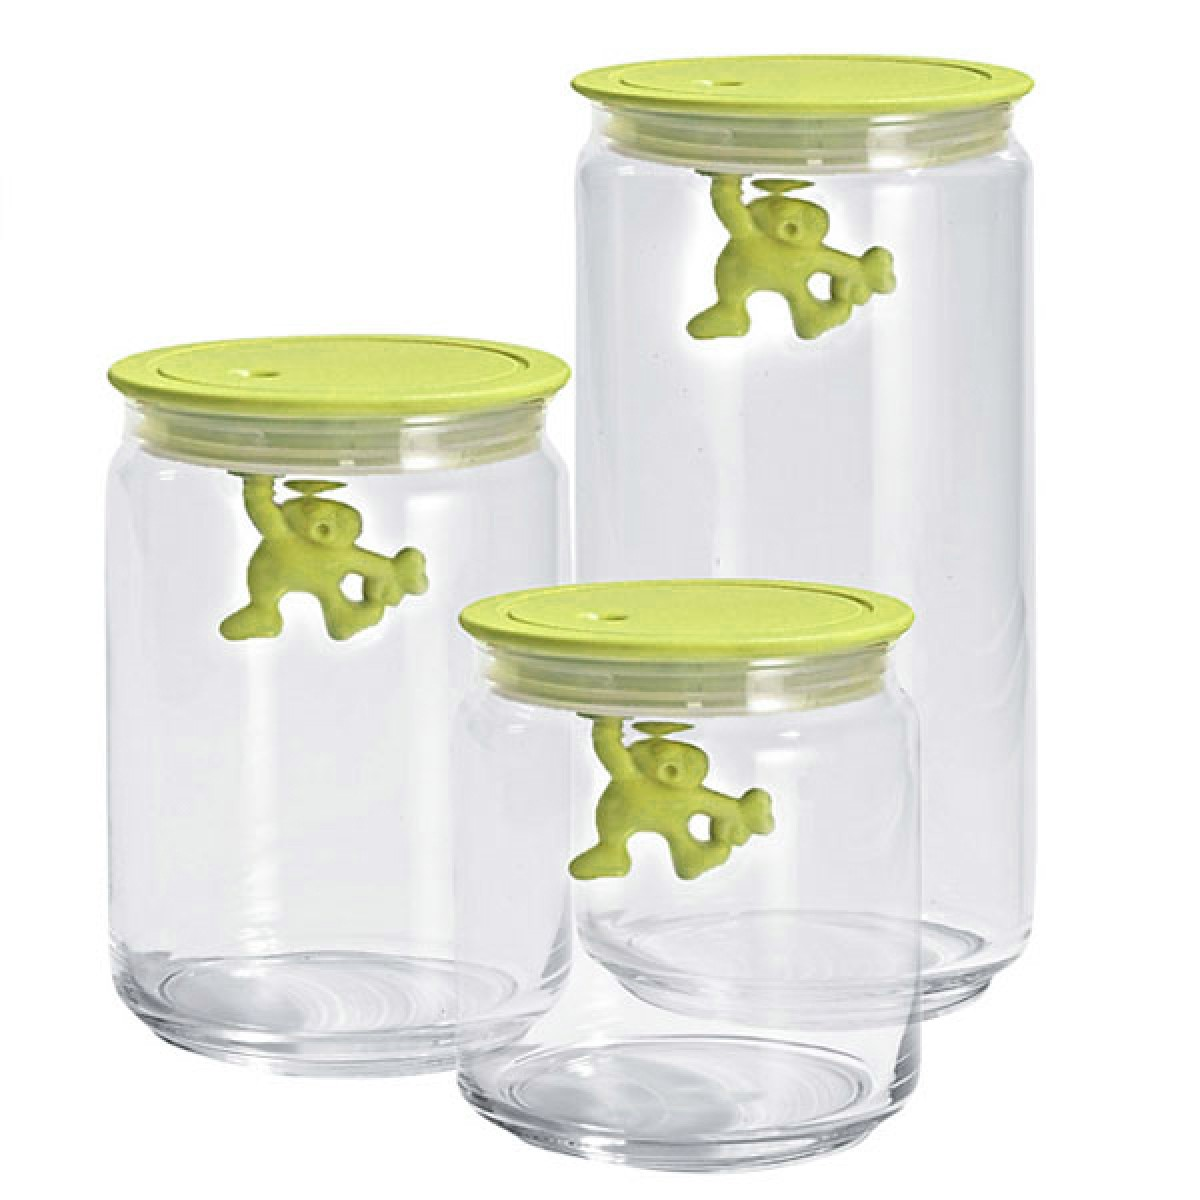 100 glass kitchen canisters kitchen green kitchen colors